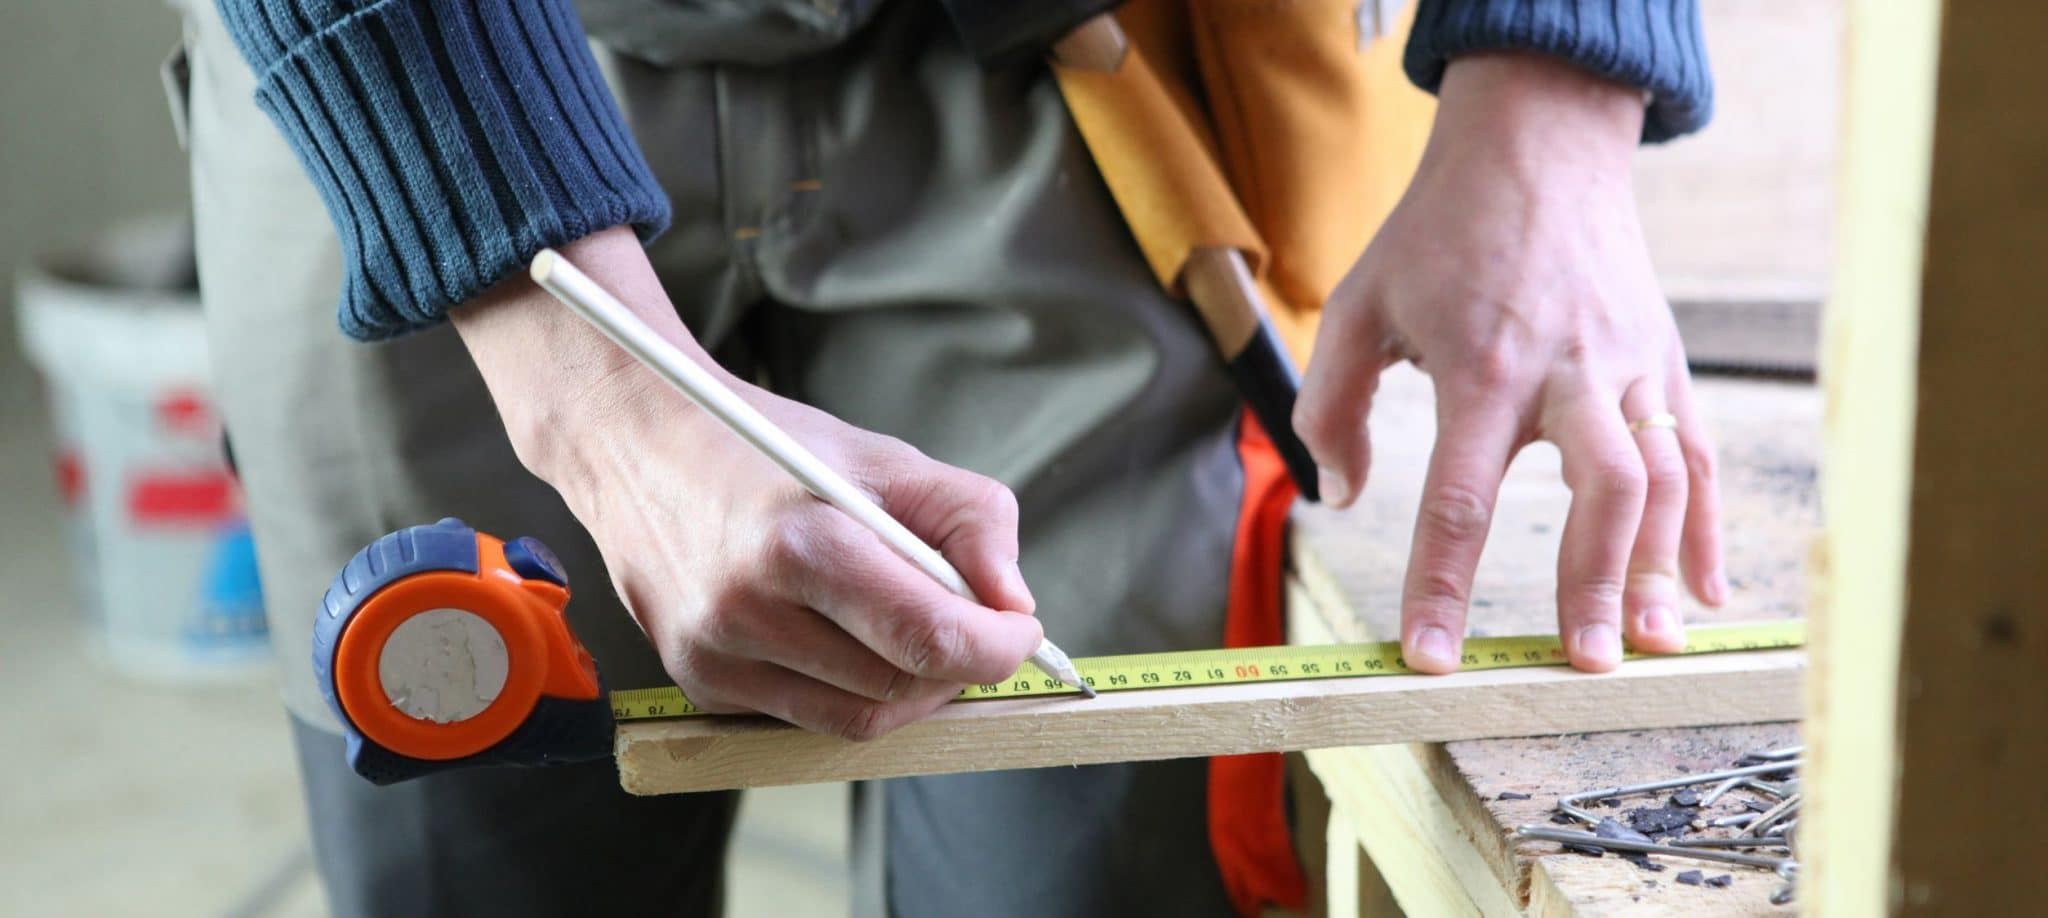 Man measuring a piece of wood